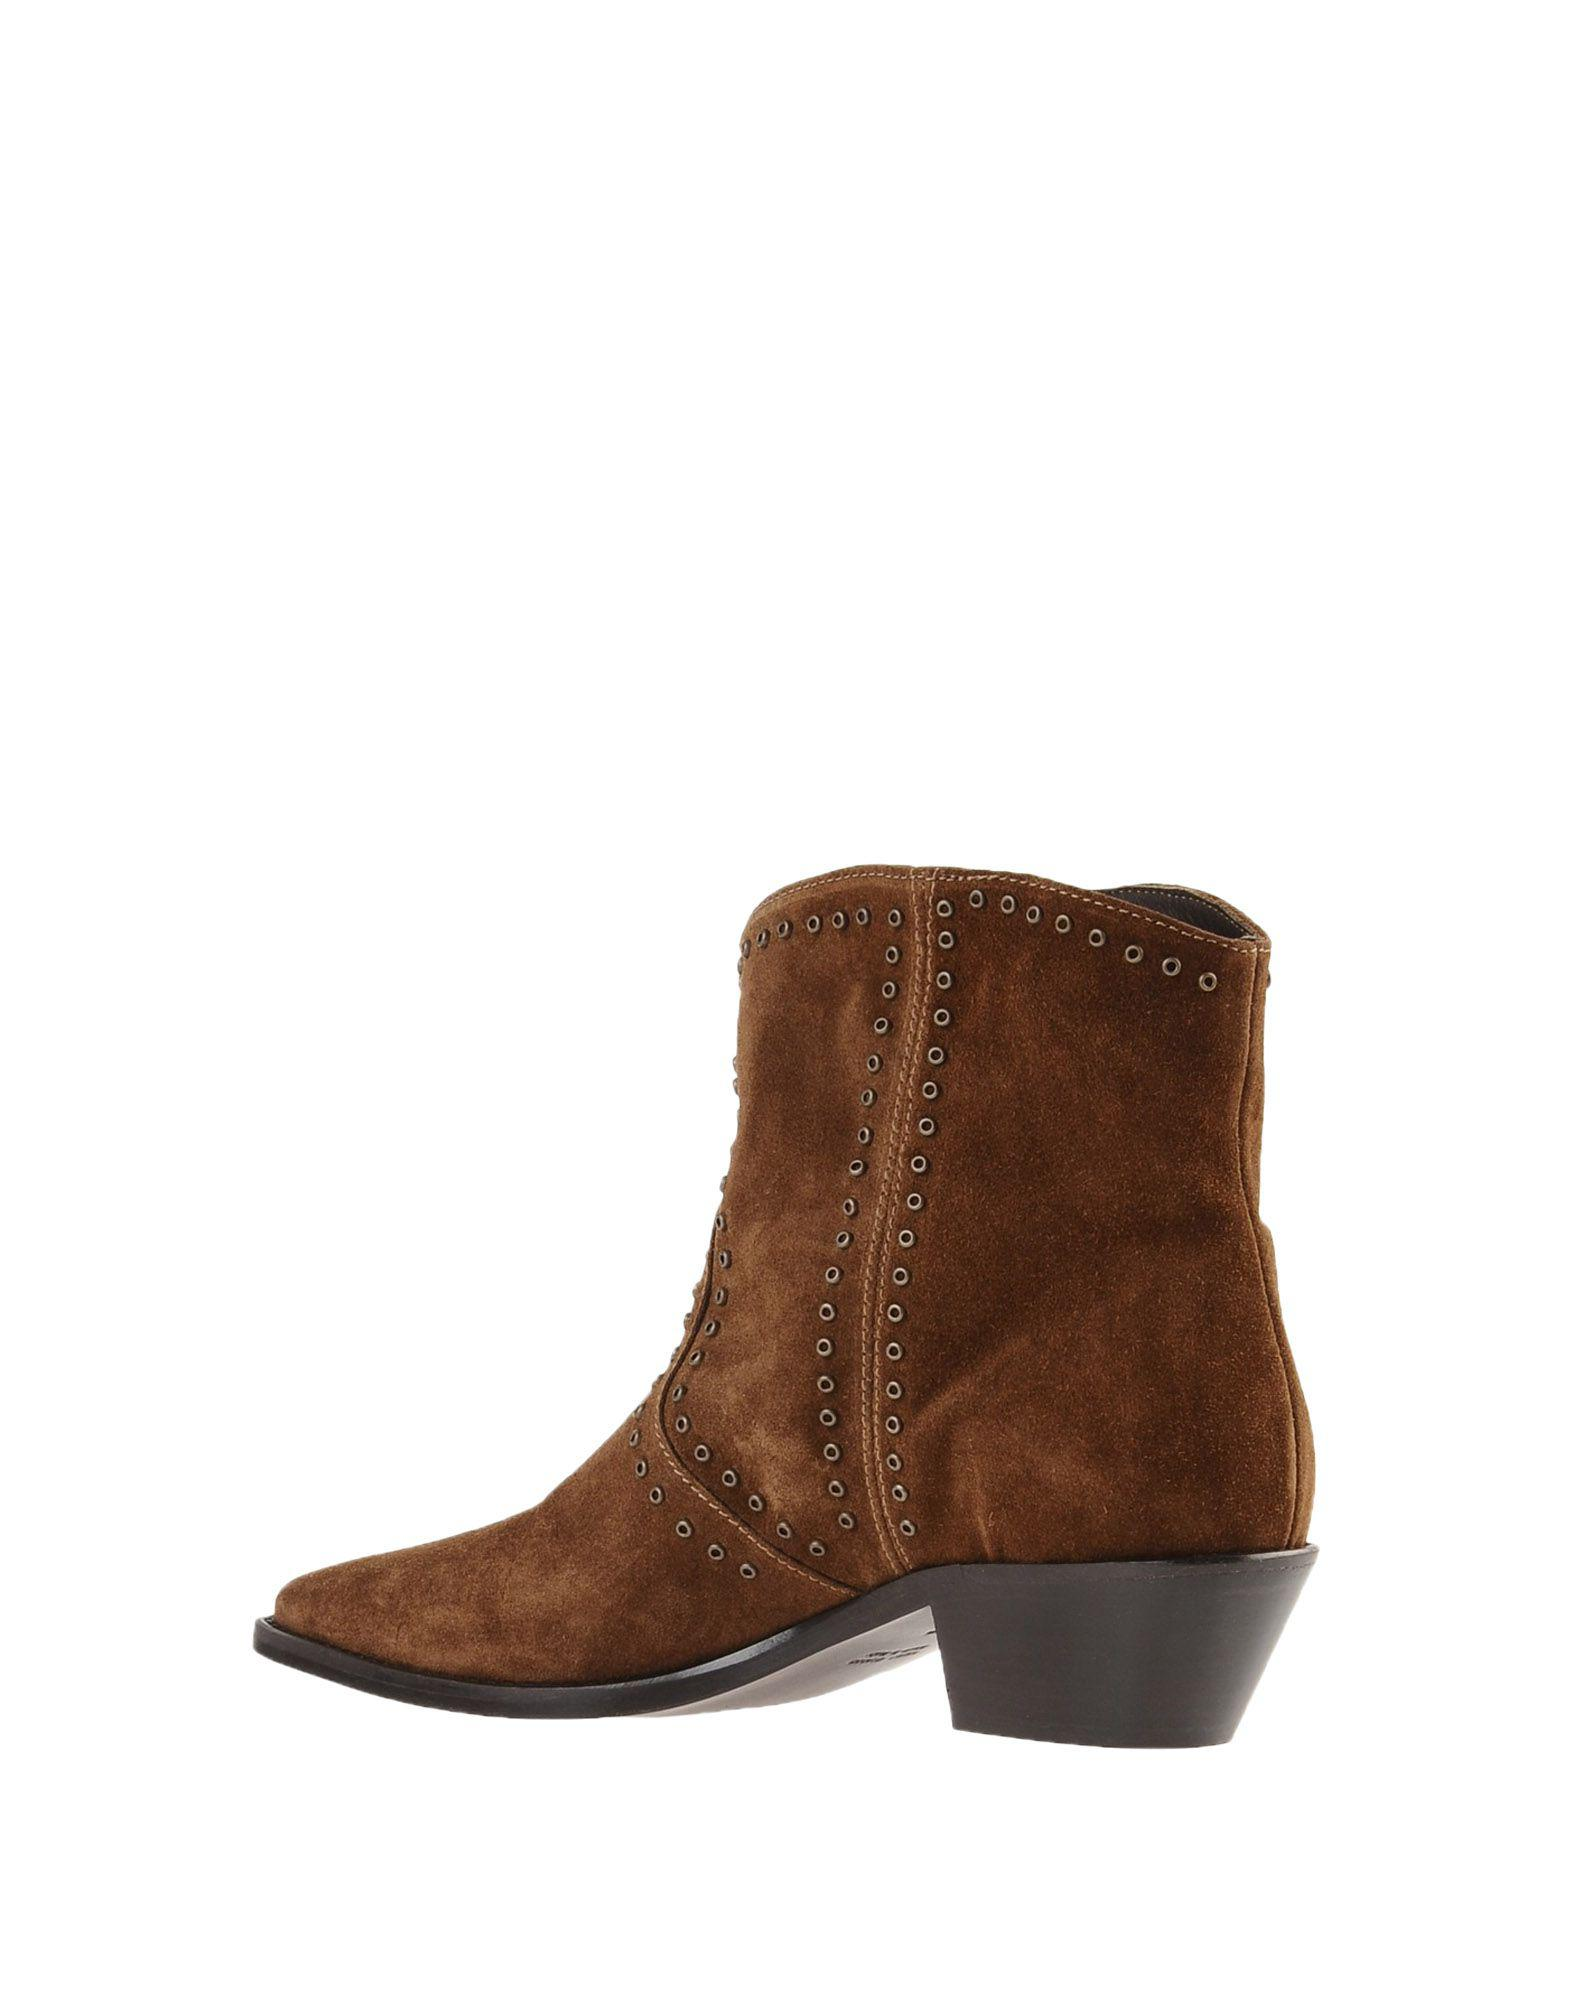 0d60bf72e85a Lemarè Ankle Boots in Brown - Lyst